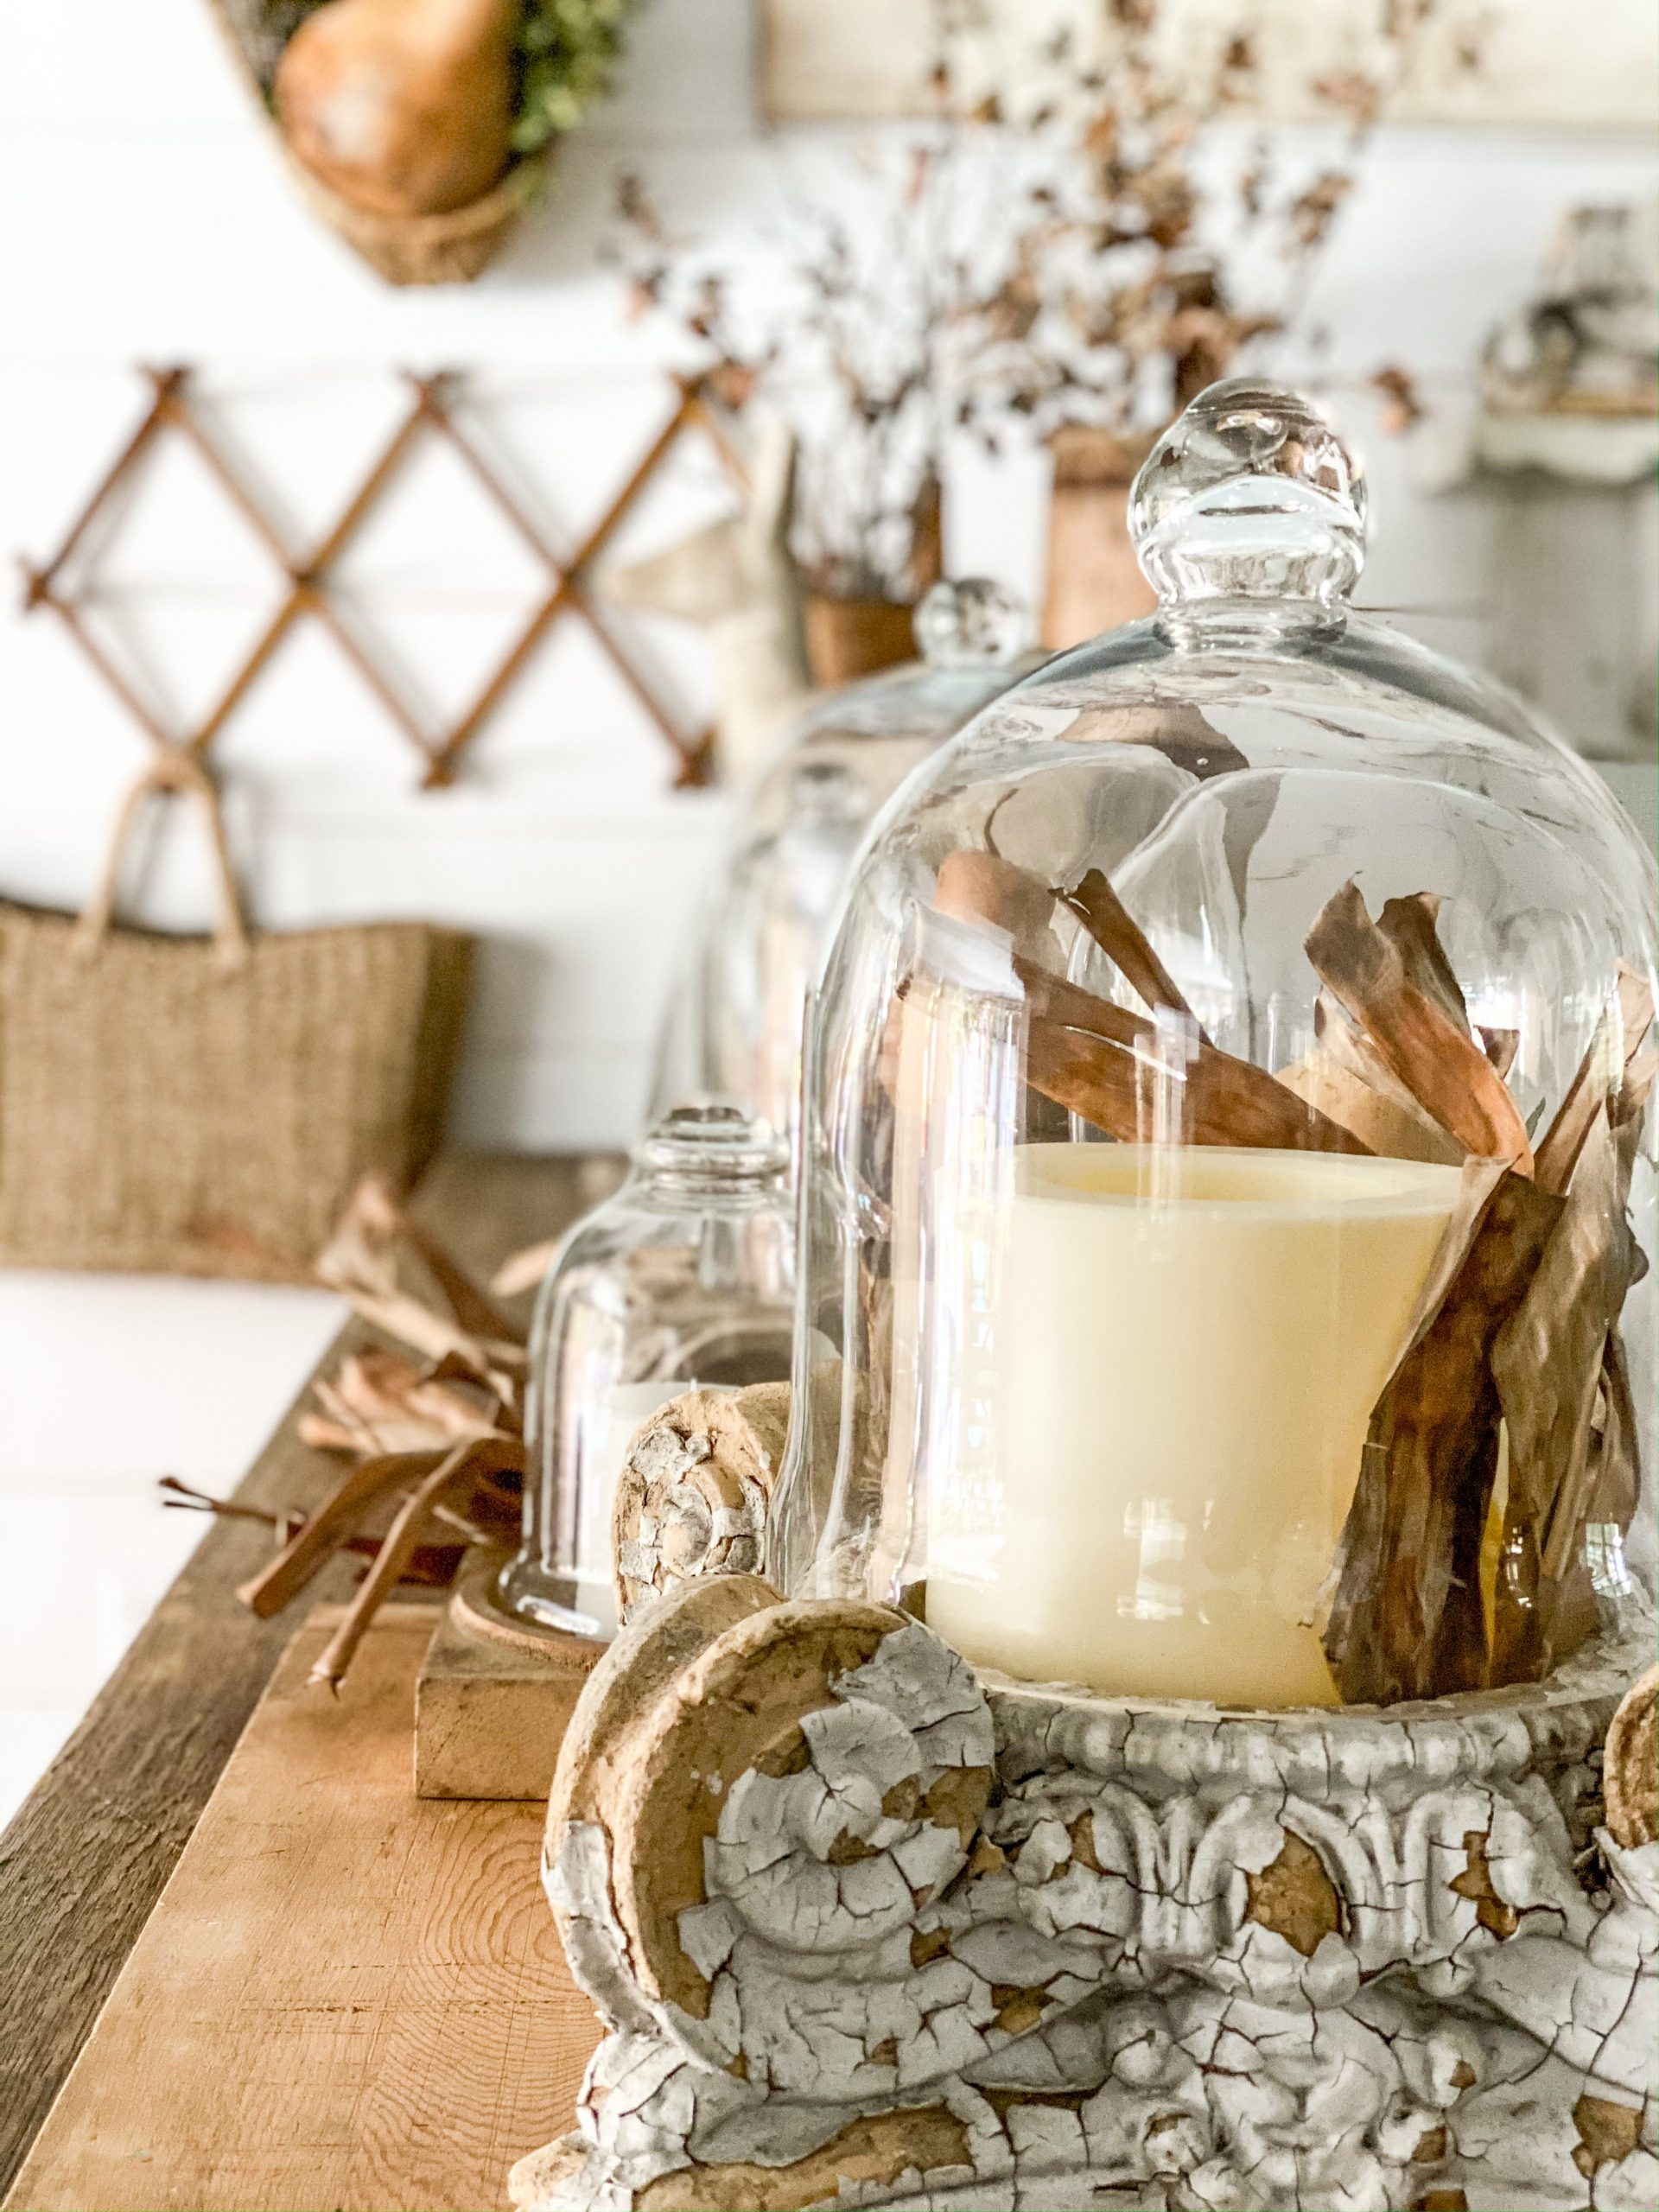 5 Easy Ways to Style a Cloche for Fall Decorating